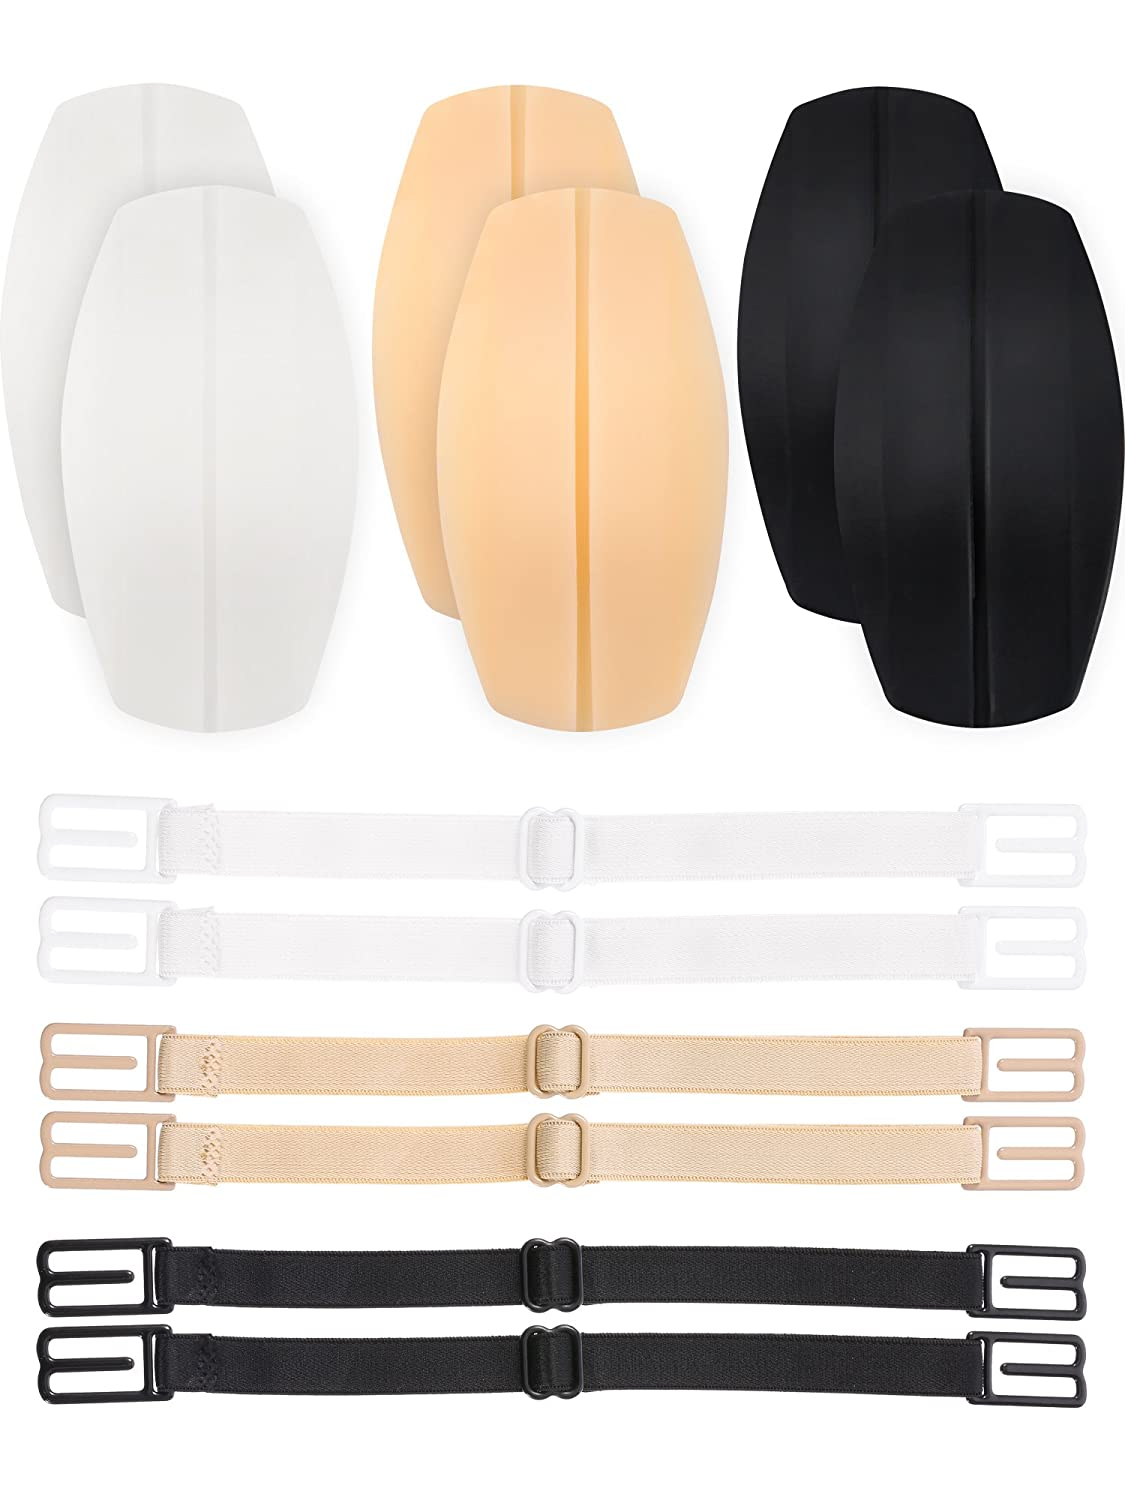 3 Pairs Bra Strap Cushions Holder Silicone Shoulder Protectors Pads with 6 Pieces Non-slip Elastic Bra Strap Clips Holder, White, Beige and Black